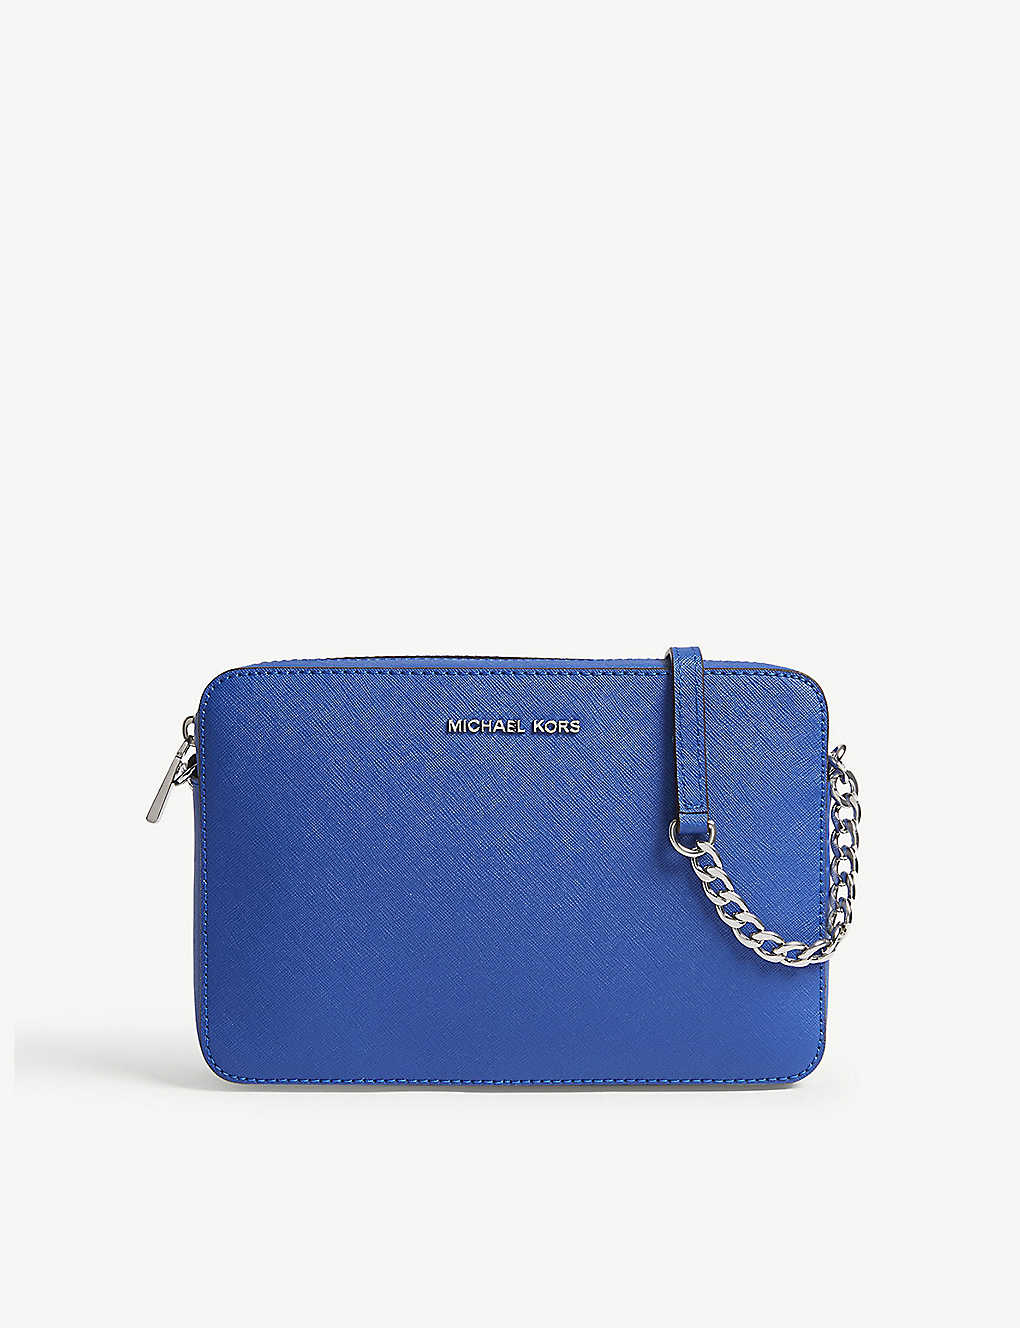 40d88a728488 MICHAEL MICHAEL KORS - Jet Set Travel leather cross-body bag ...